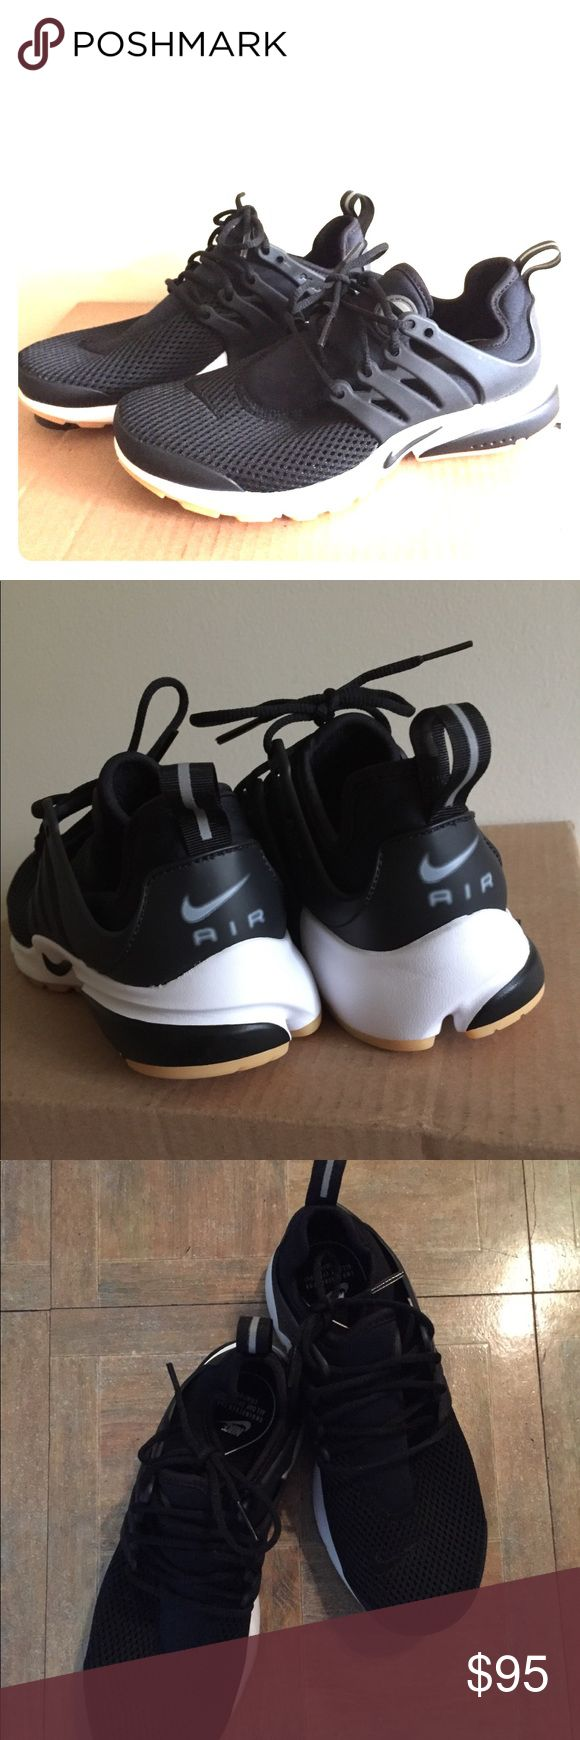 NEW Women's NIKE Air Presto Sneakers Never been worn!!! Black Women's Air Presto Sneakers. Size US 6. Super comfortable and light weight. Nike Shoes Athletic Shoes